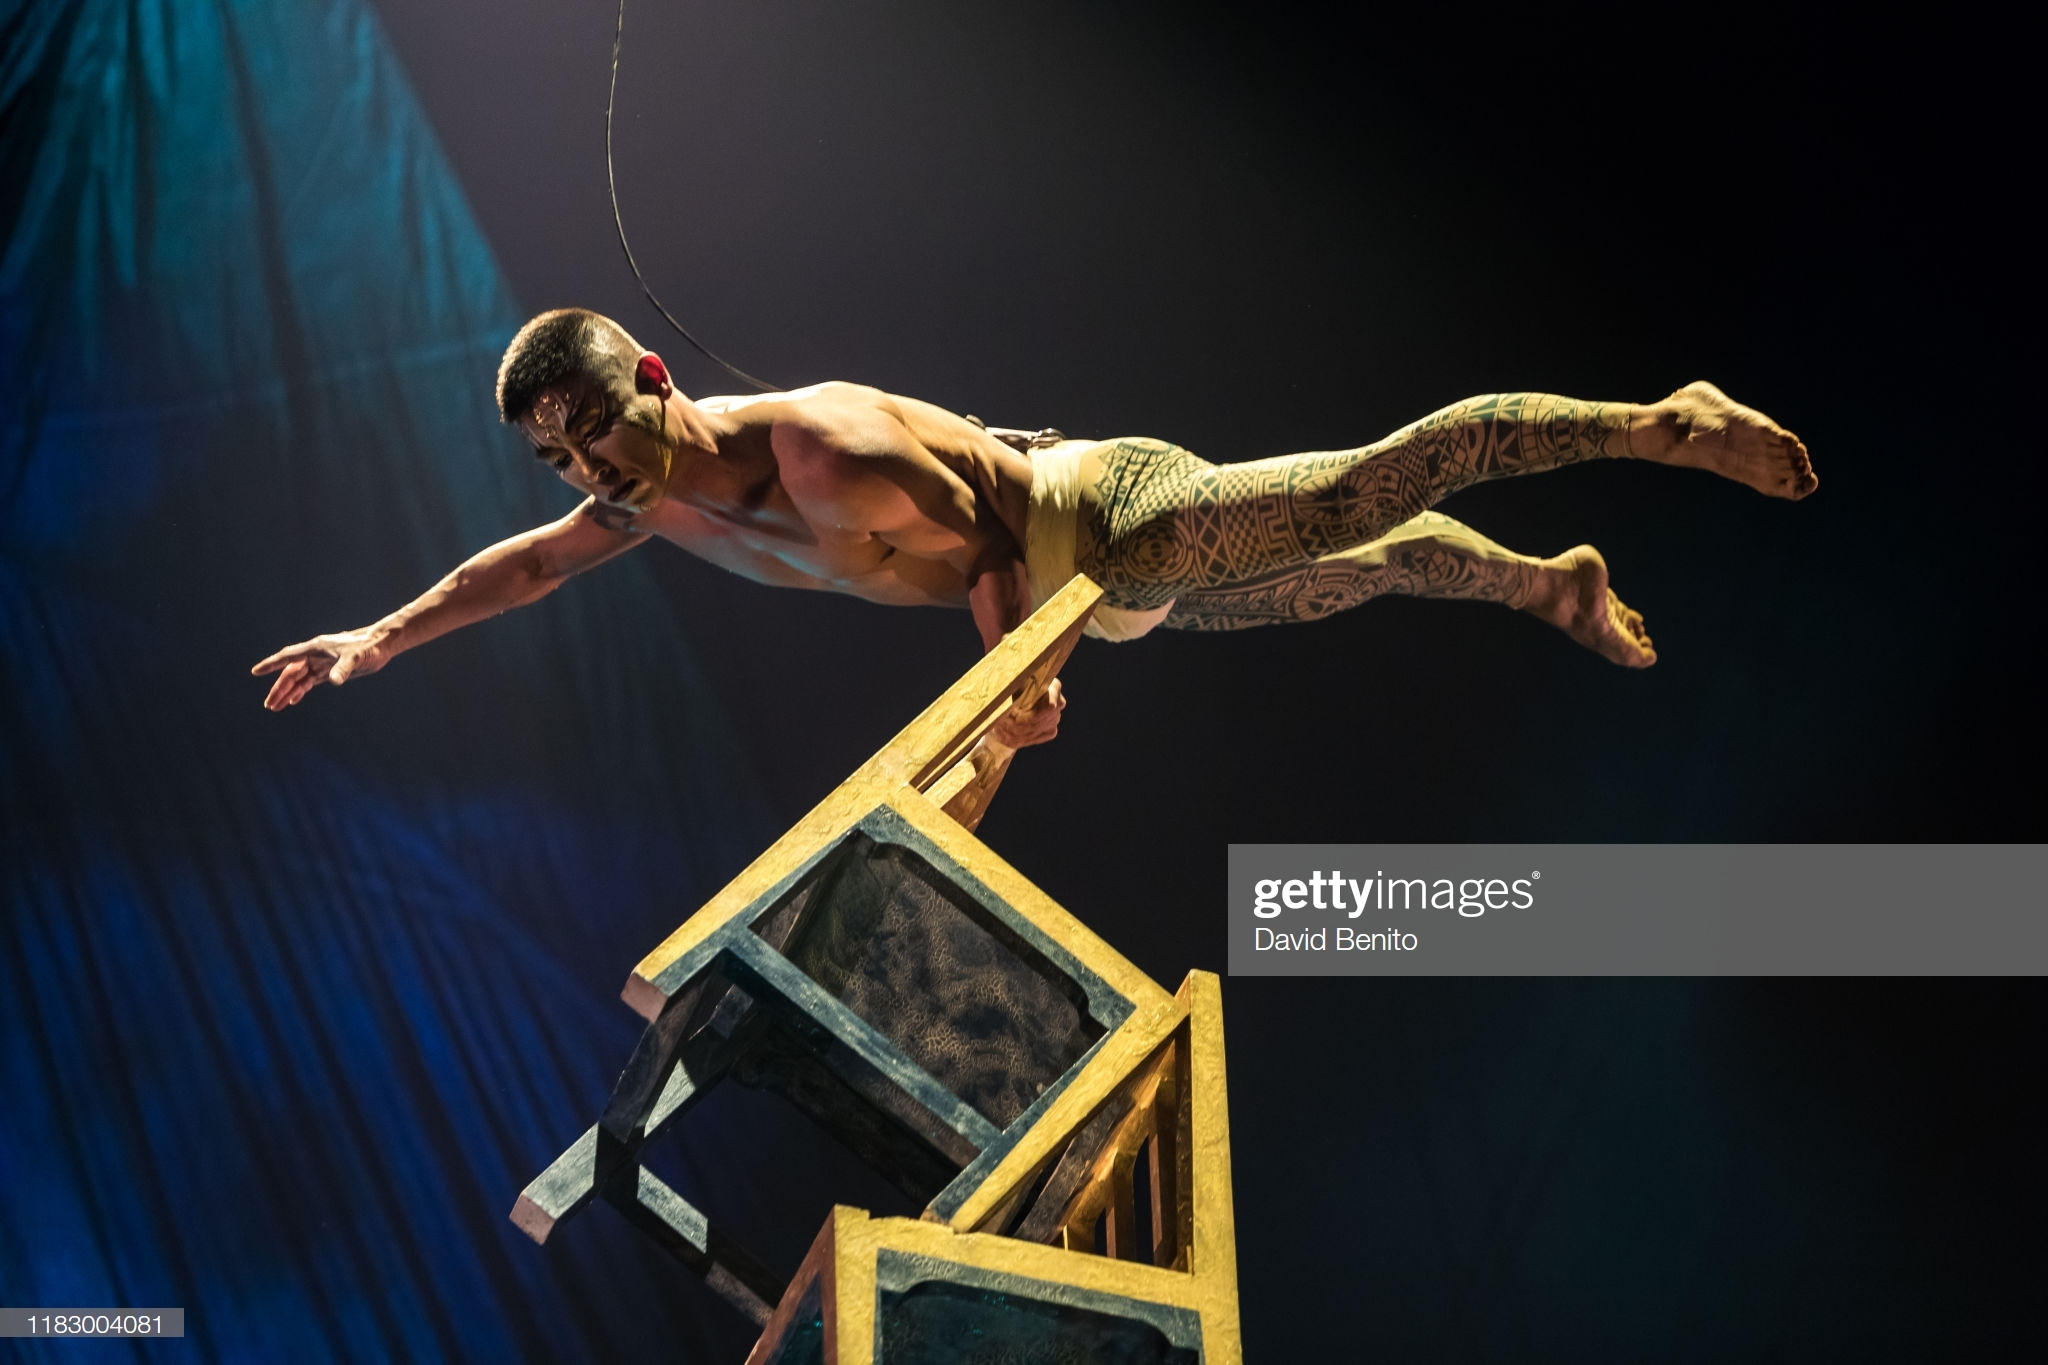 gettyimages-1183004081-2048x2048